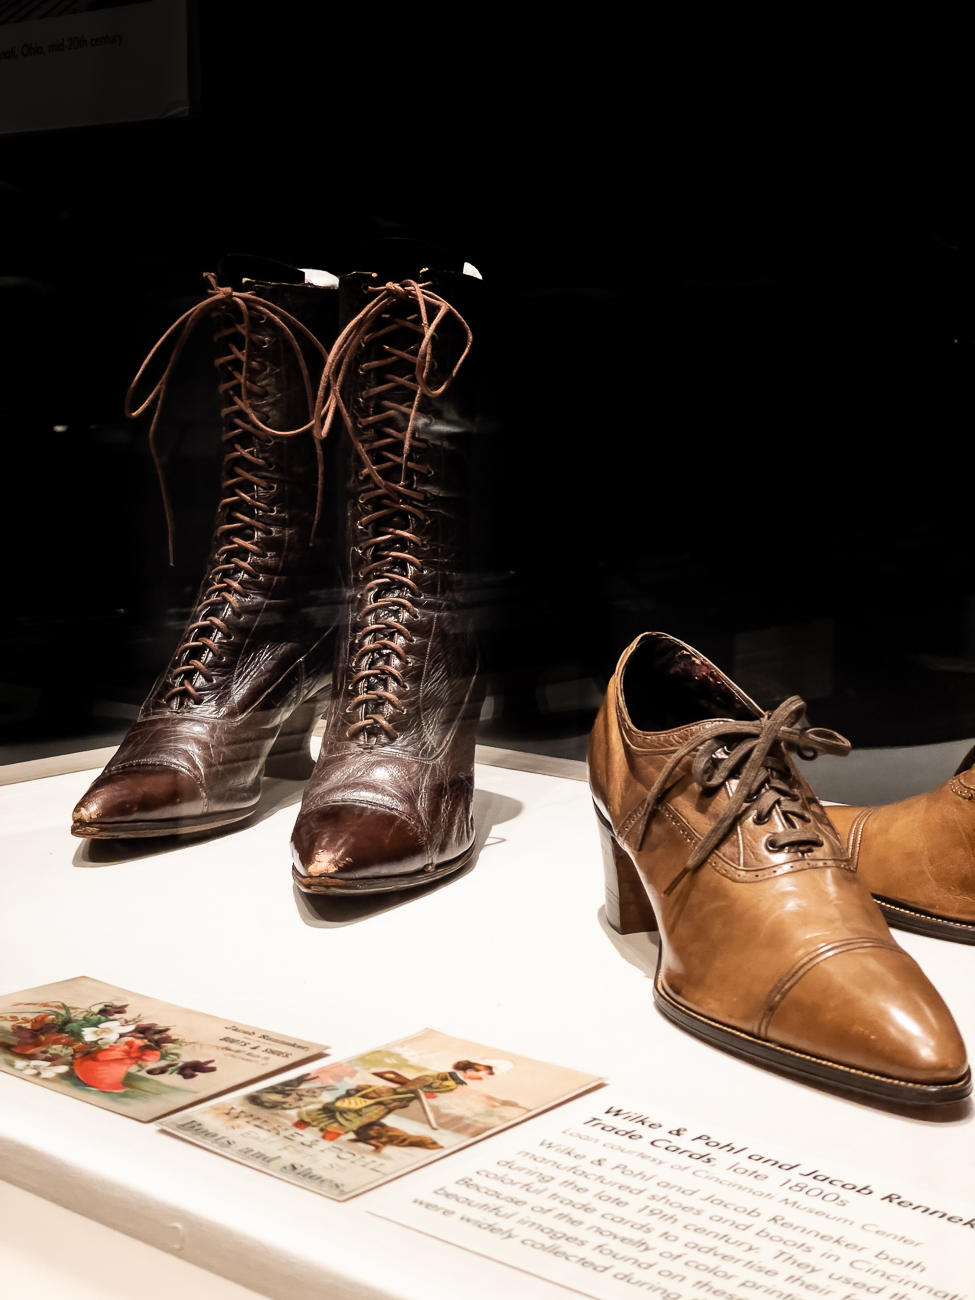 Lace-up Boots by Juliam & Kokenge Company (1910), and Red Cross Noiseless Shoes by Kron-Fechheimer & Co. (1918). Both shoes were made in Cincinnati. / Image: Phil Armstrong, Cincinnati Refined // Published: 3.1.21